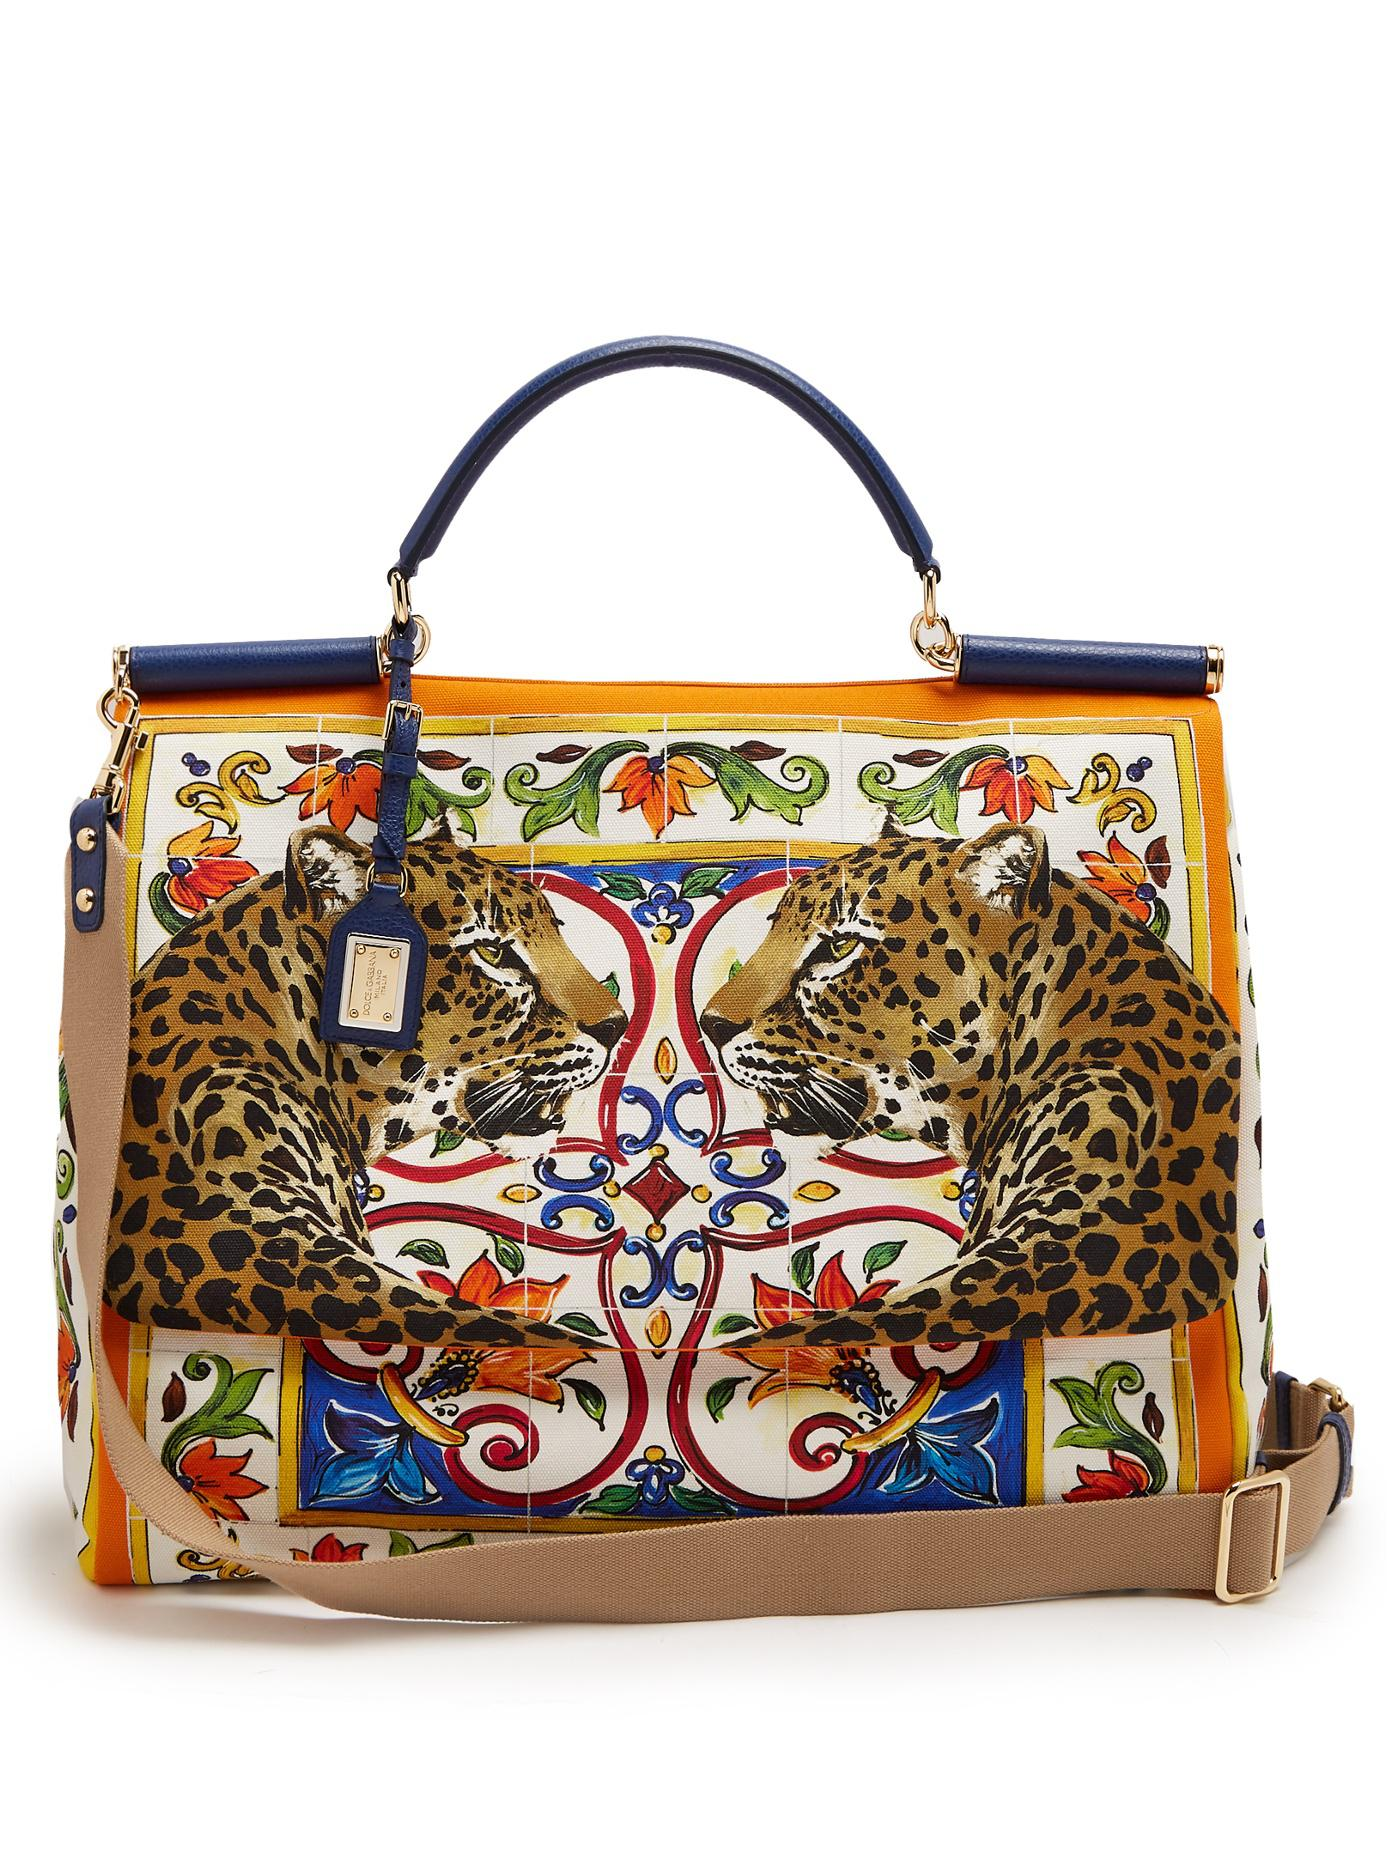 437adee995 Lyst - Dolce   Gabbana Sicily Medium Majolica-print Canvas Bag